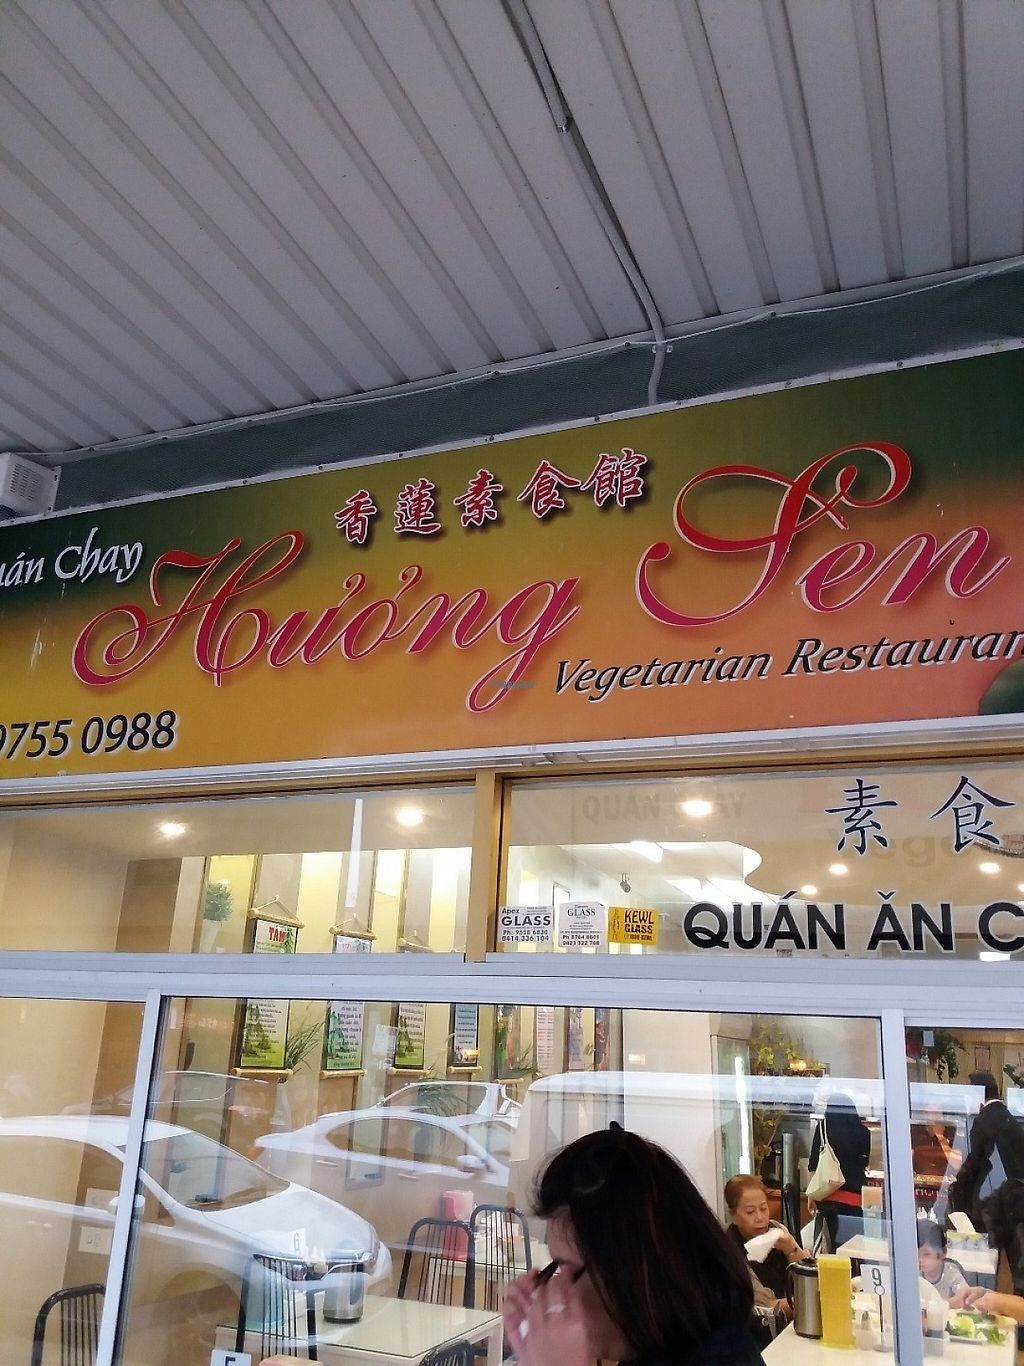 """Photo of Quan Chay Huong Sen Vegetarian  by <a href=""""/members/profile/veganvirtues"""">veganvirtues</a> <br/>Entrance <br/> March 14, 2017  - <a href='/contact/abuse/image/10714/236131'>Report</a>"""